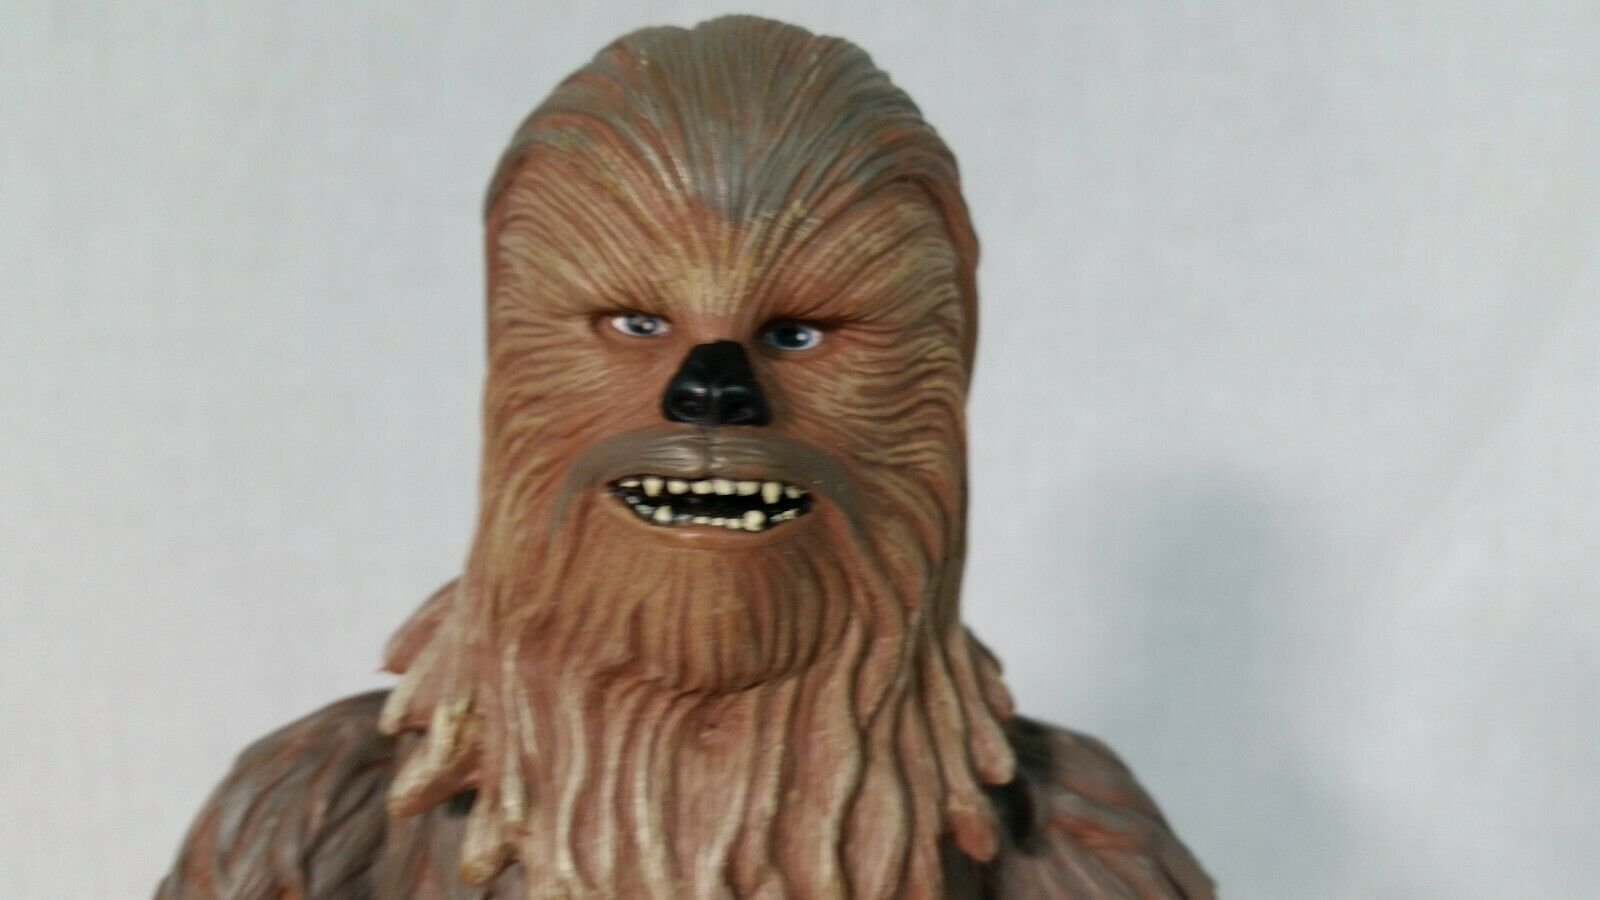 STAR WARS Chewbacca Action Figure, 14 Inch Tall - 2004 LFL Hasbro image 2